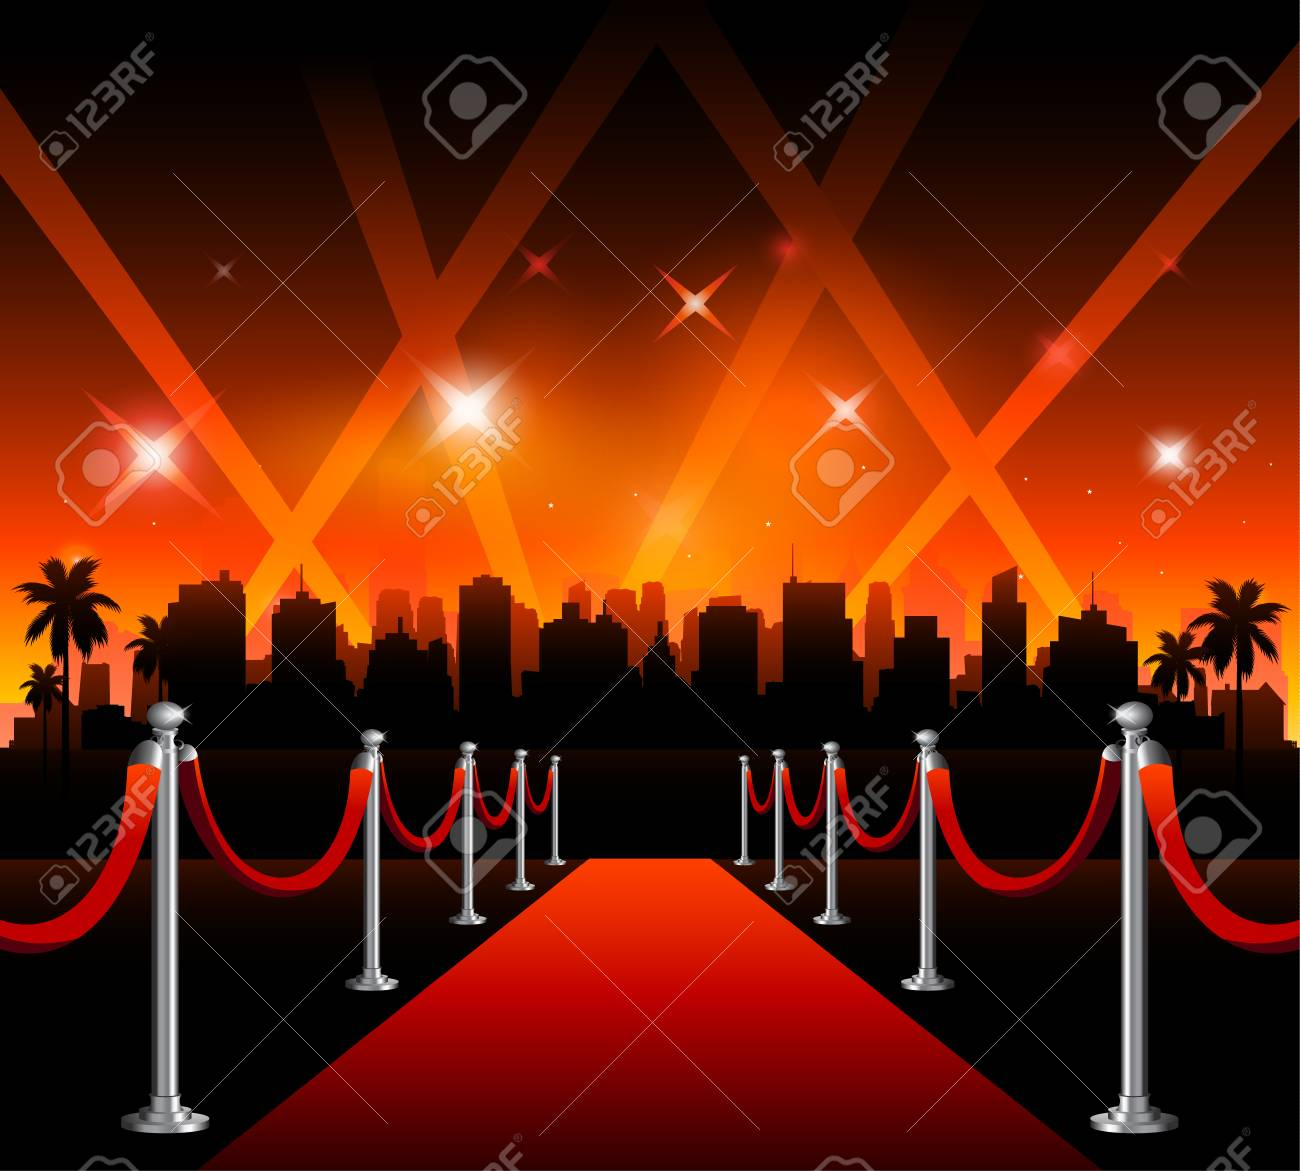 Now showing vector theater movie banner sign - 110044181